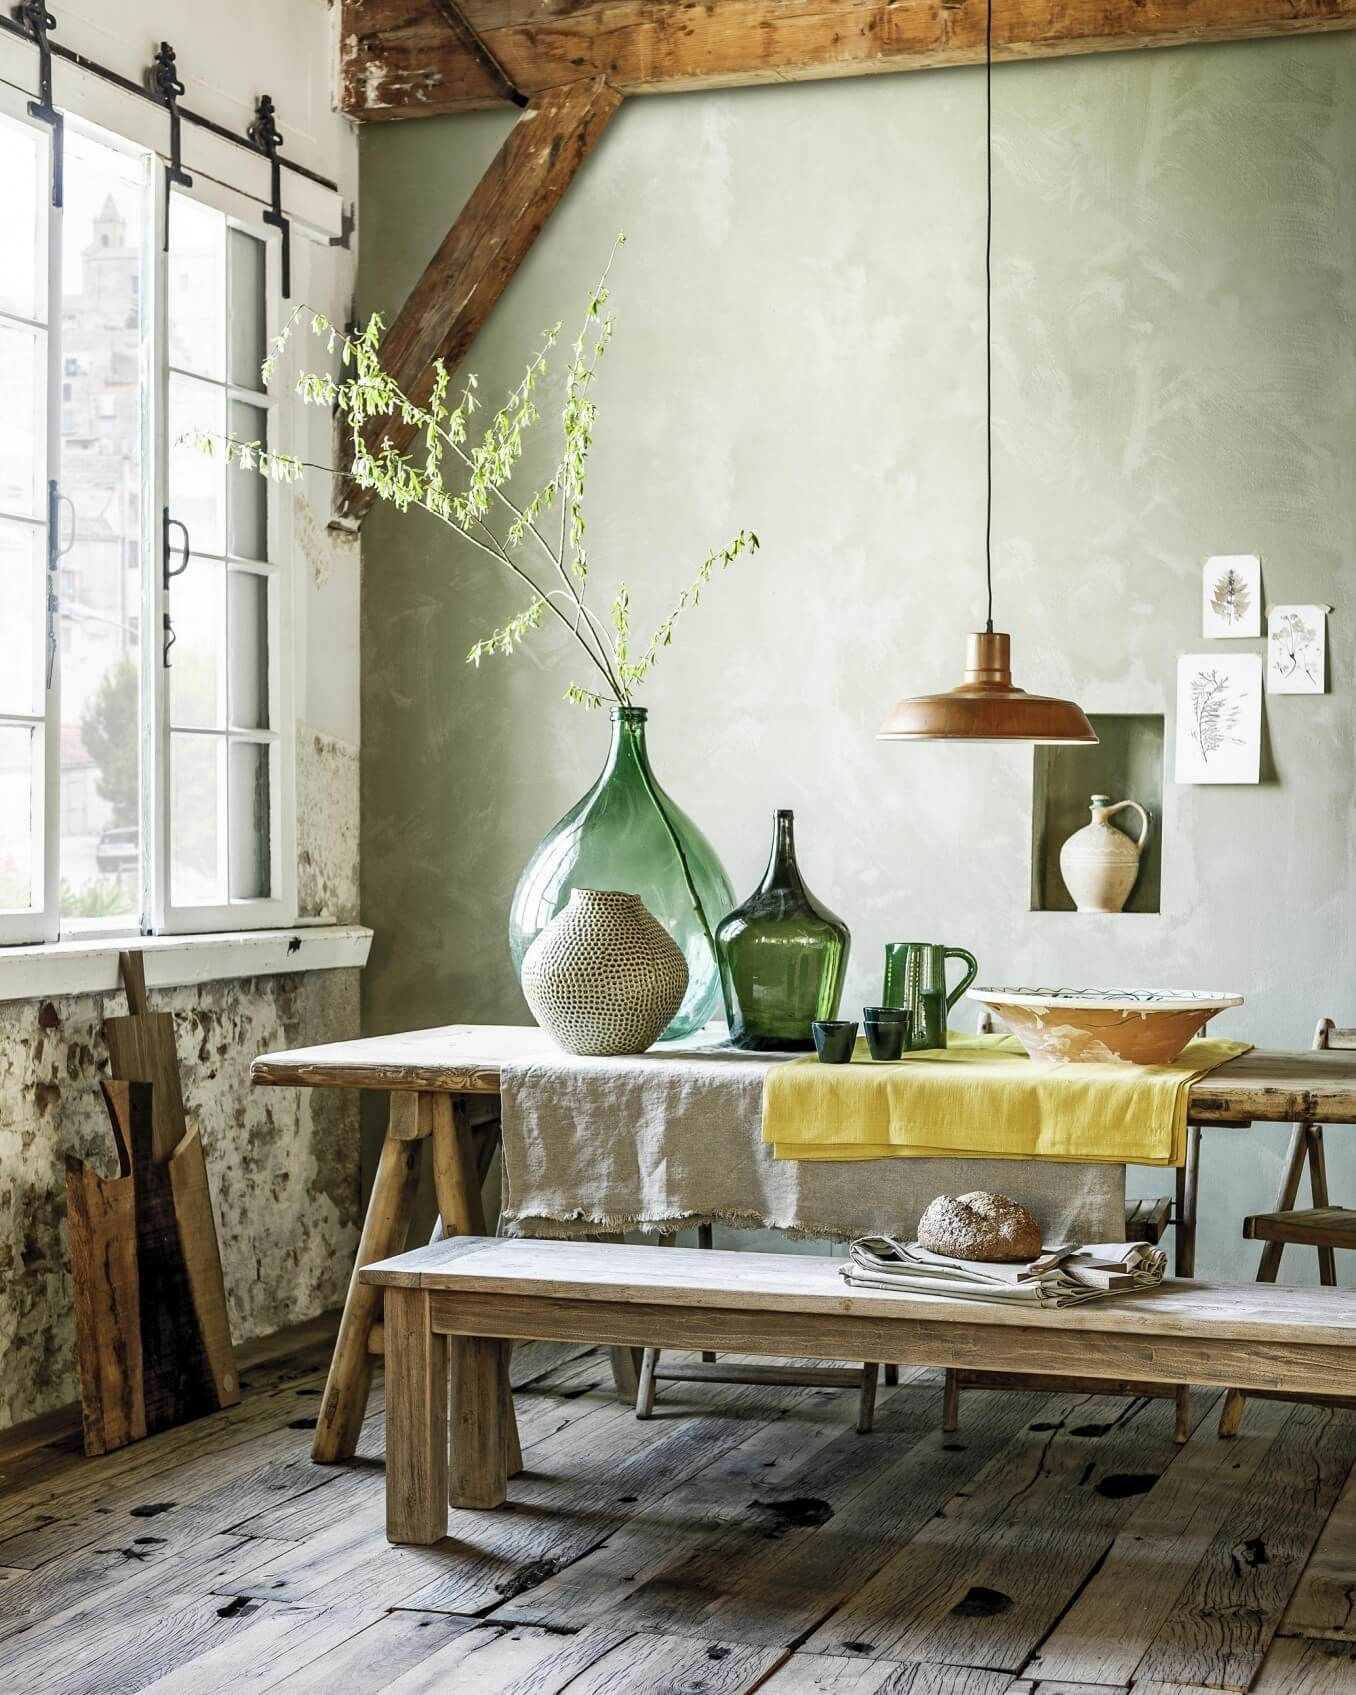 When pictures inspired me #15  Décoration toscane, Maison